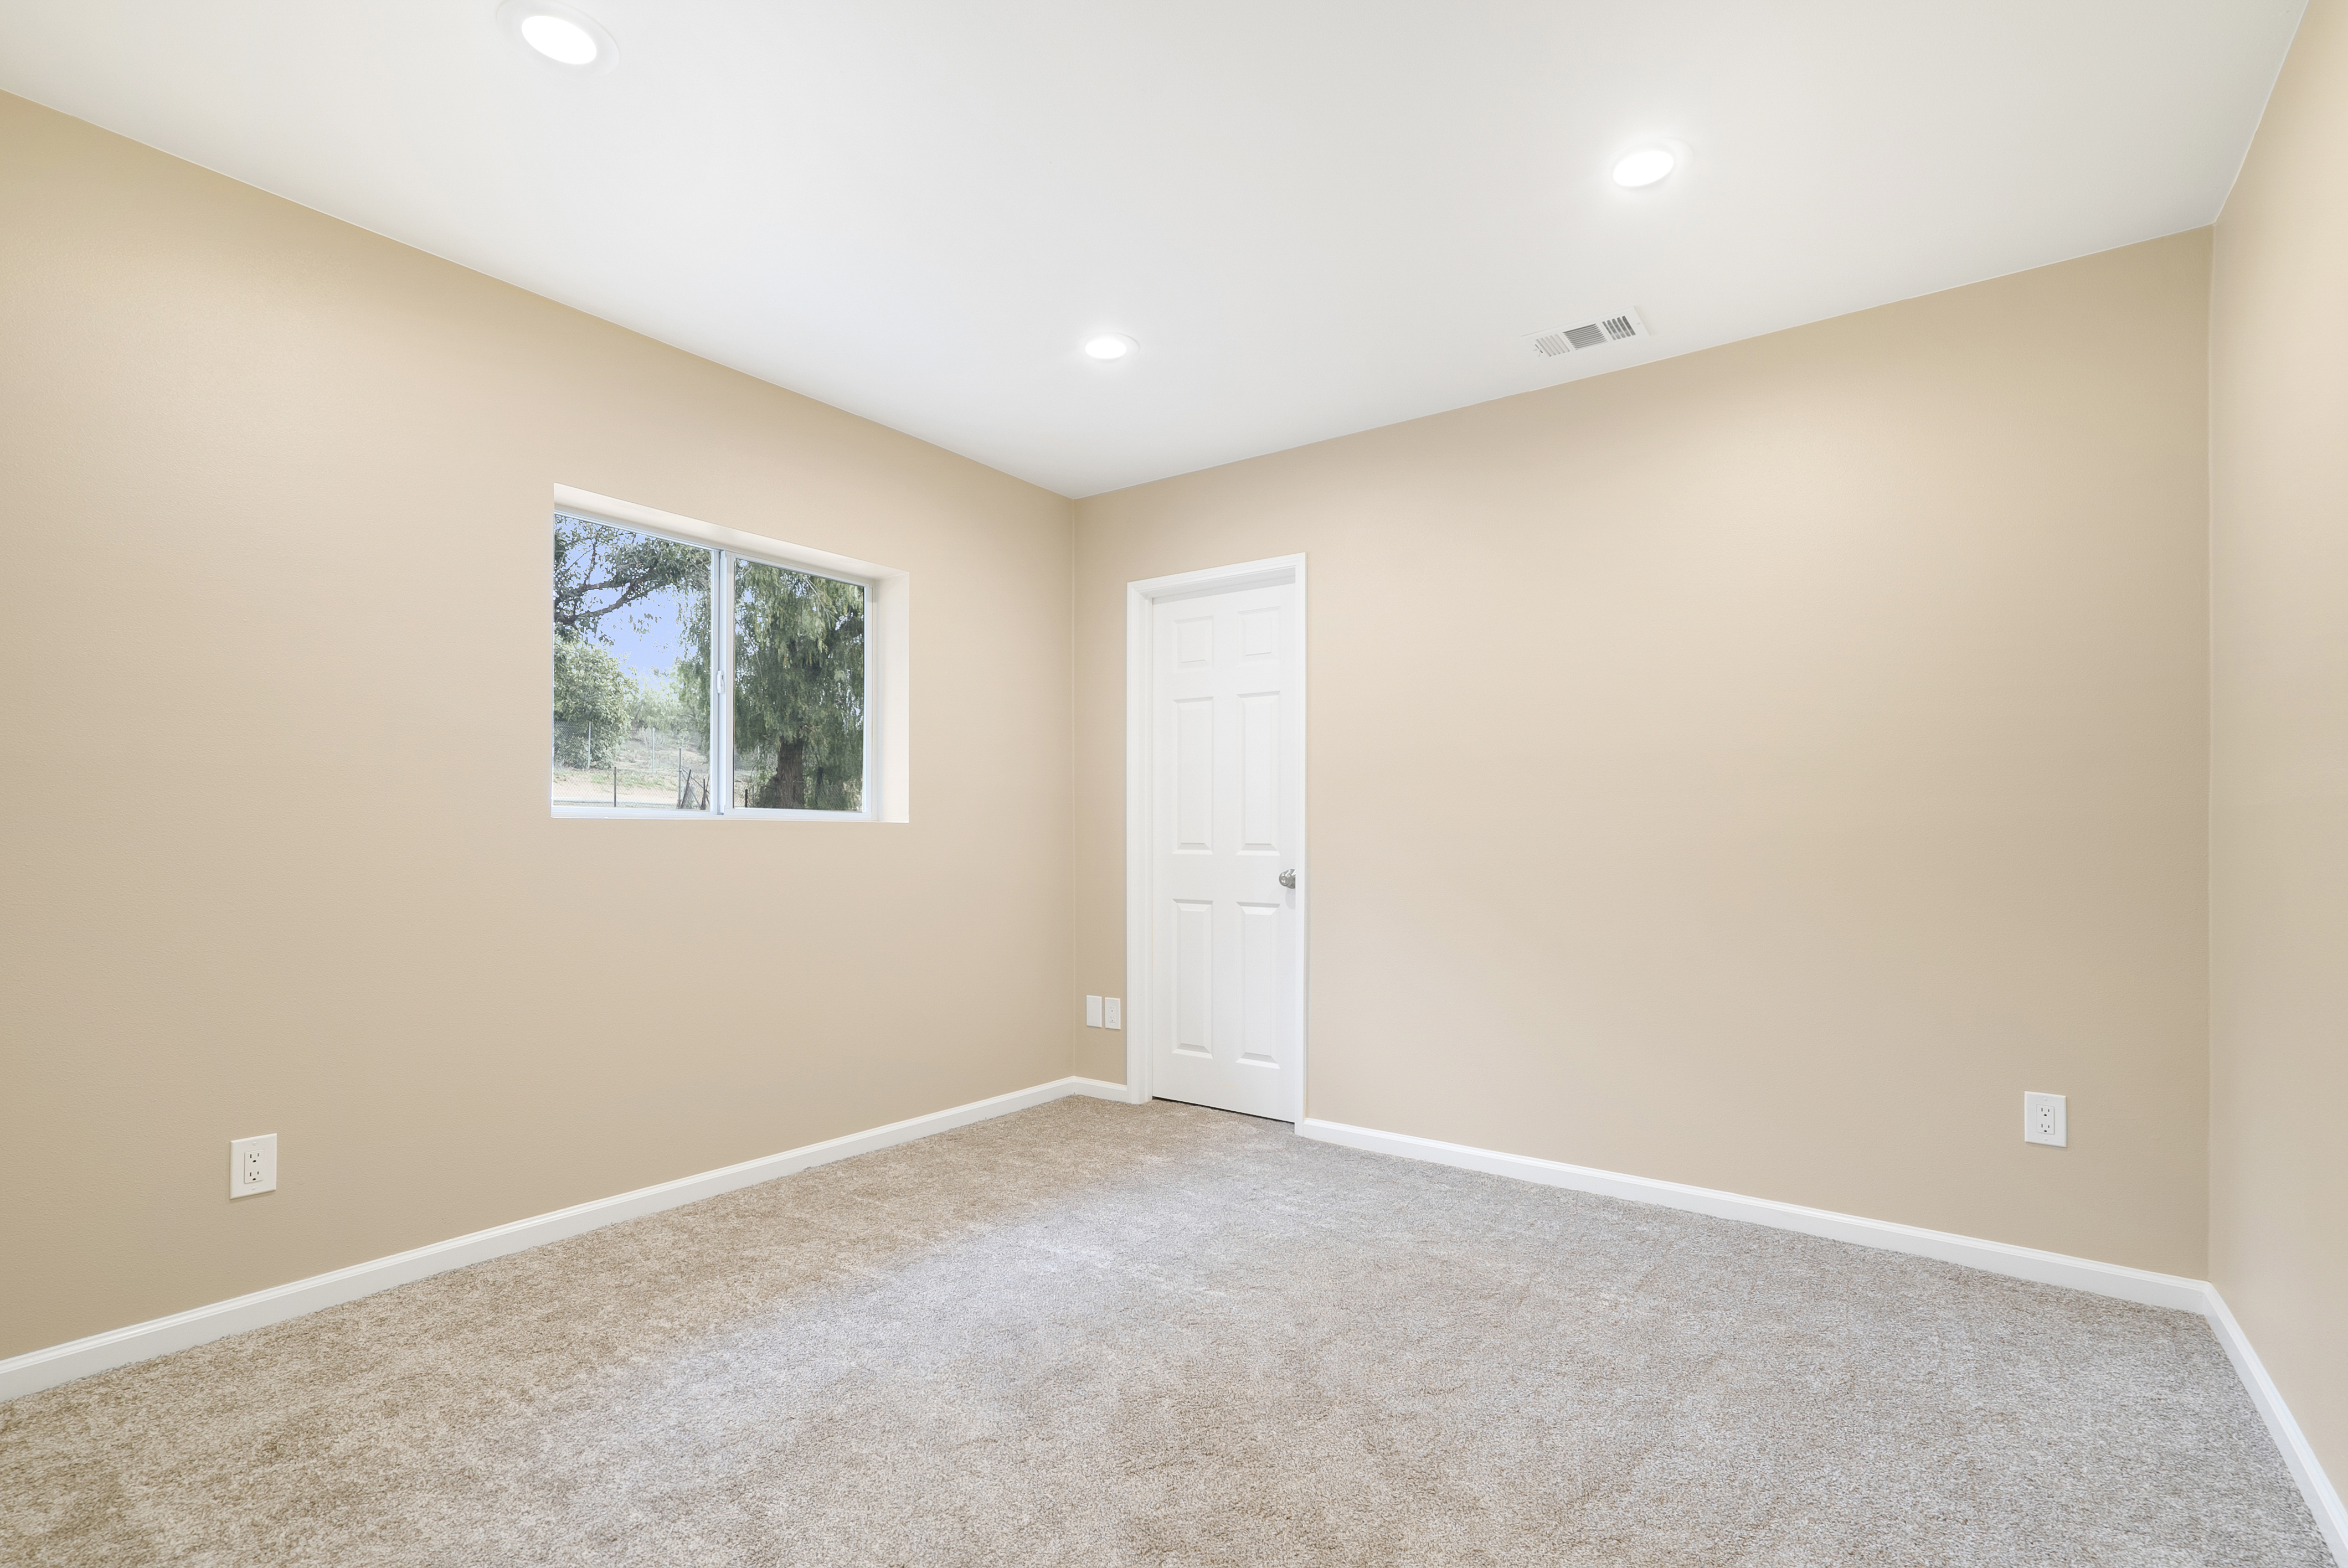 Back bedroom with new carpet, new paint, new recessed lighting, double pane window, and its own walk-in closet!